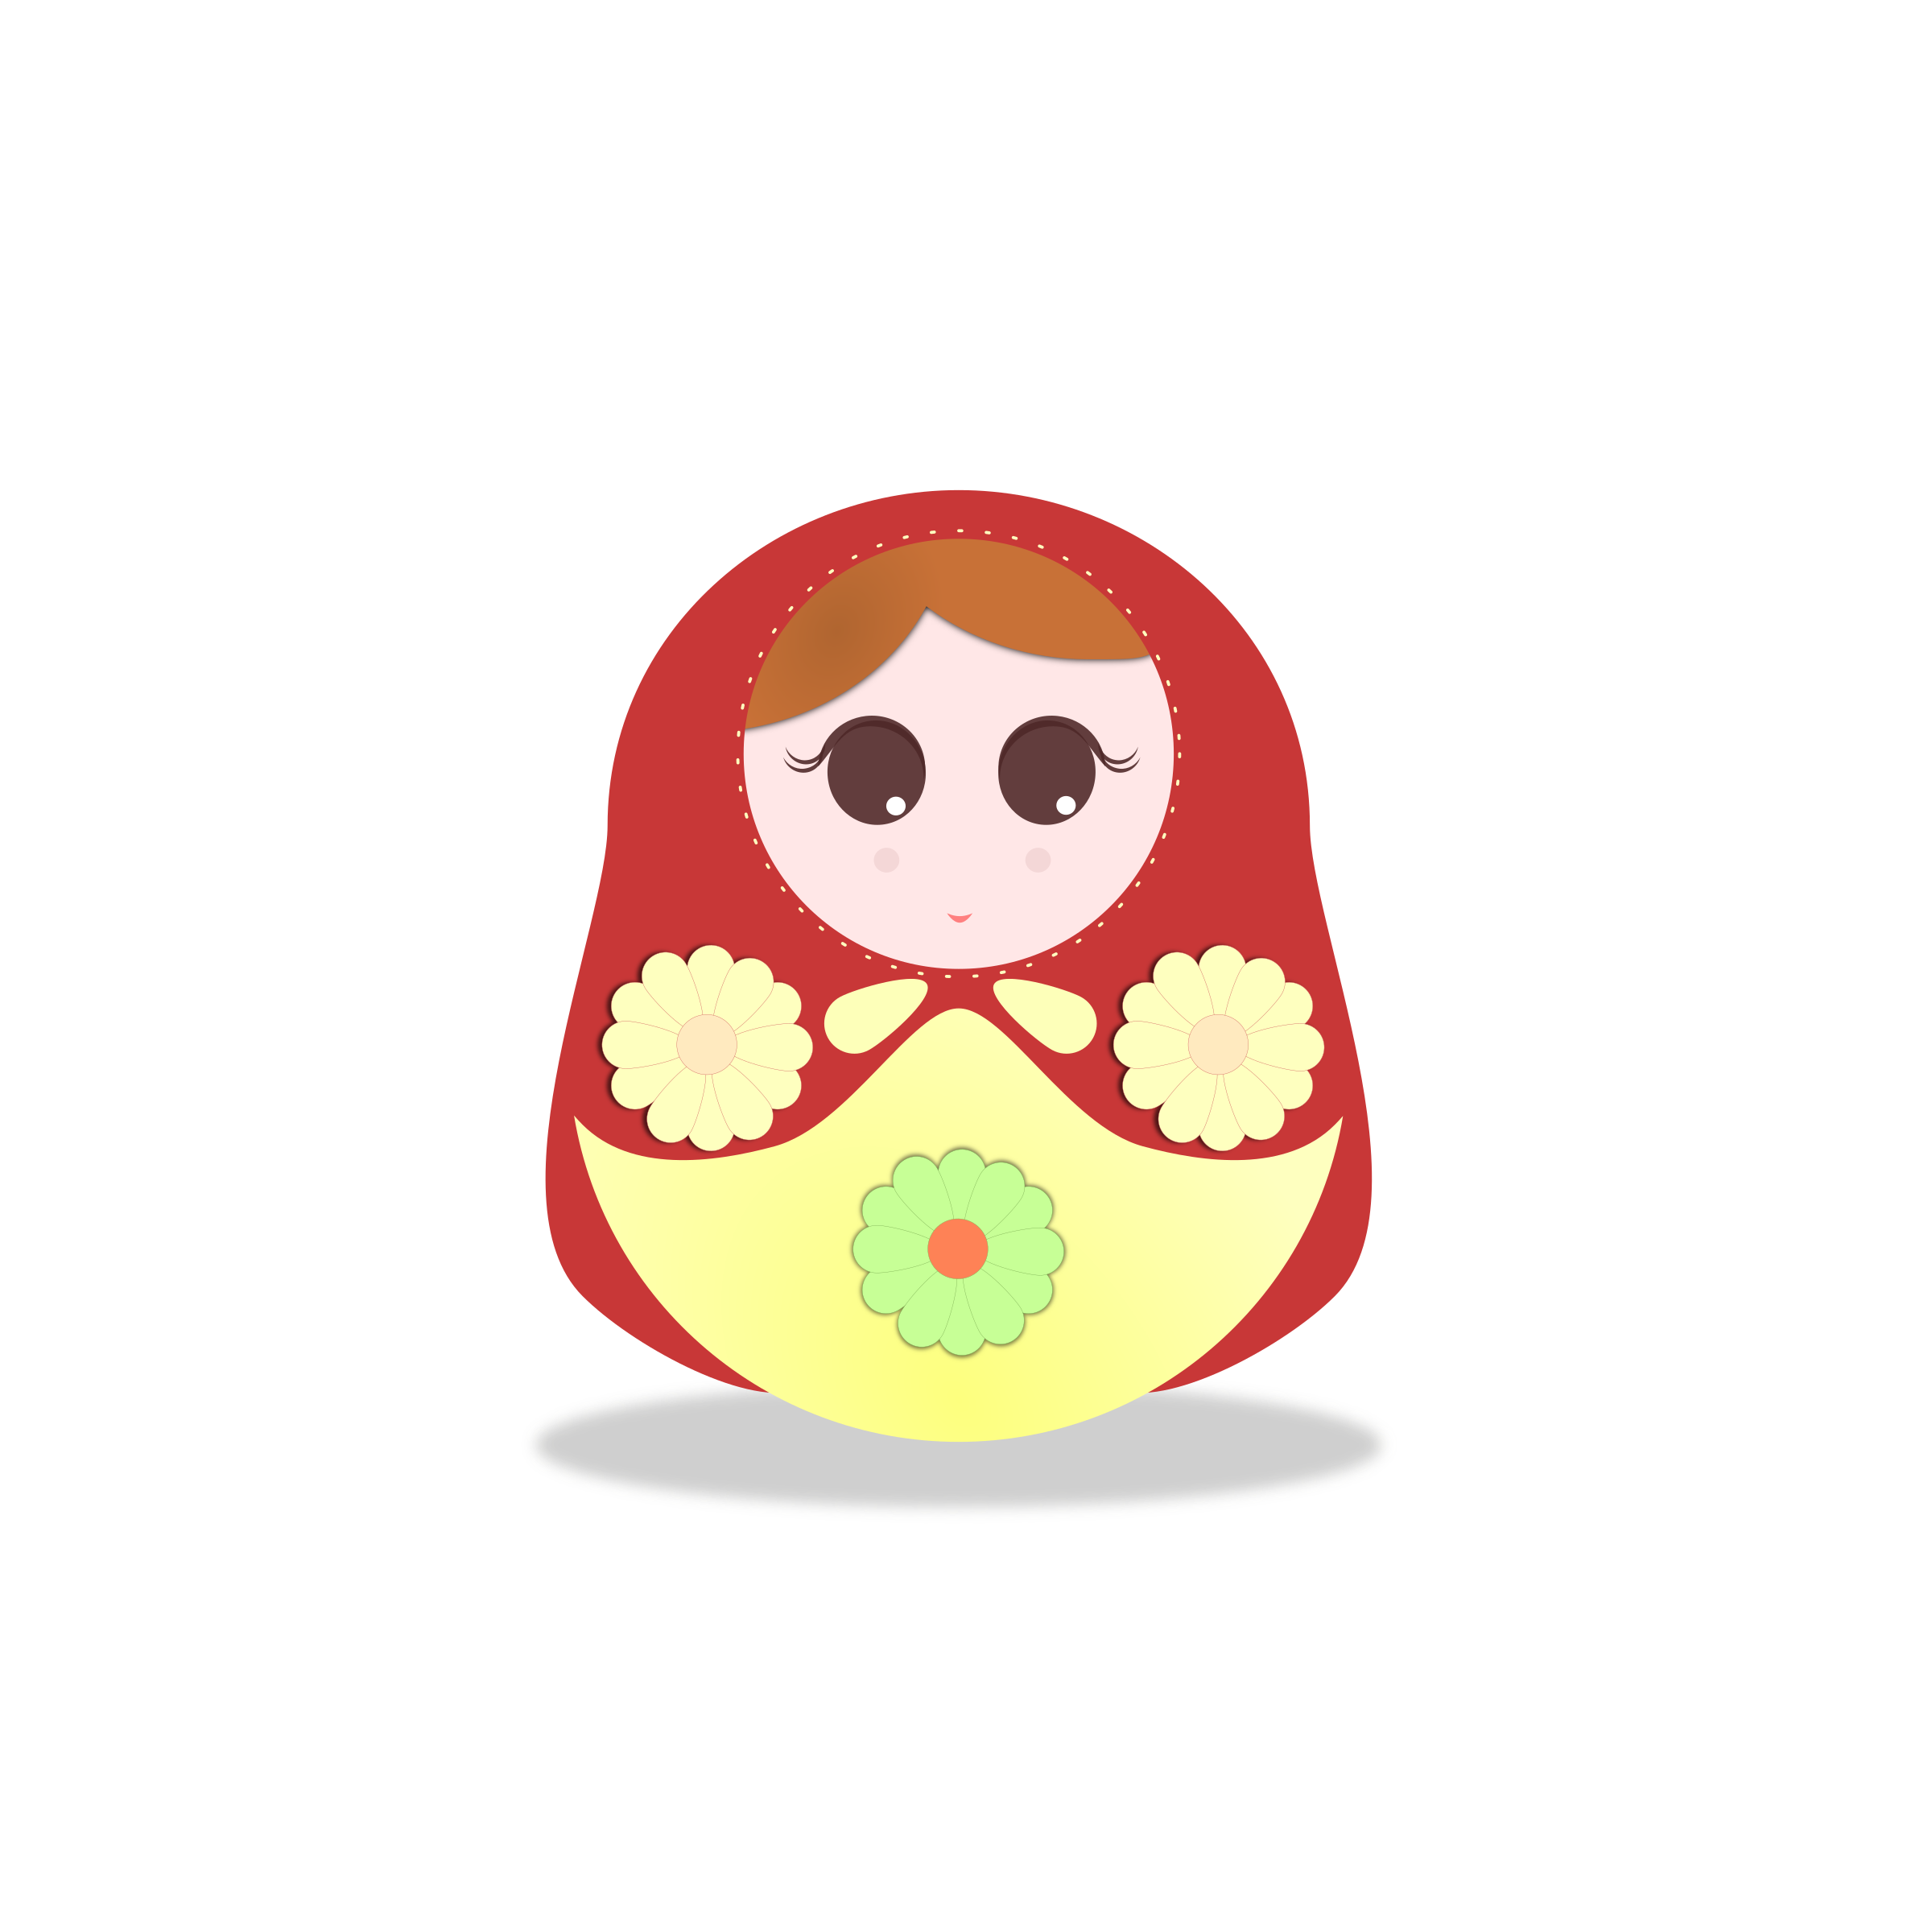 russian doll illustration by Ana.